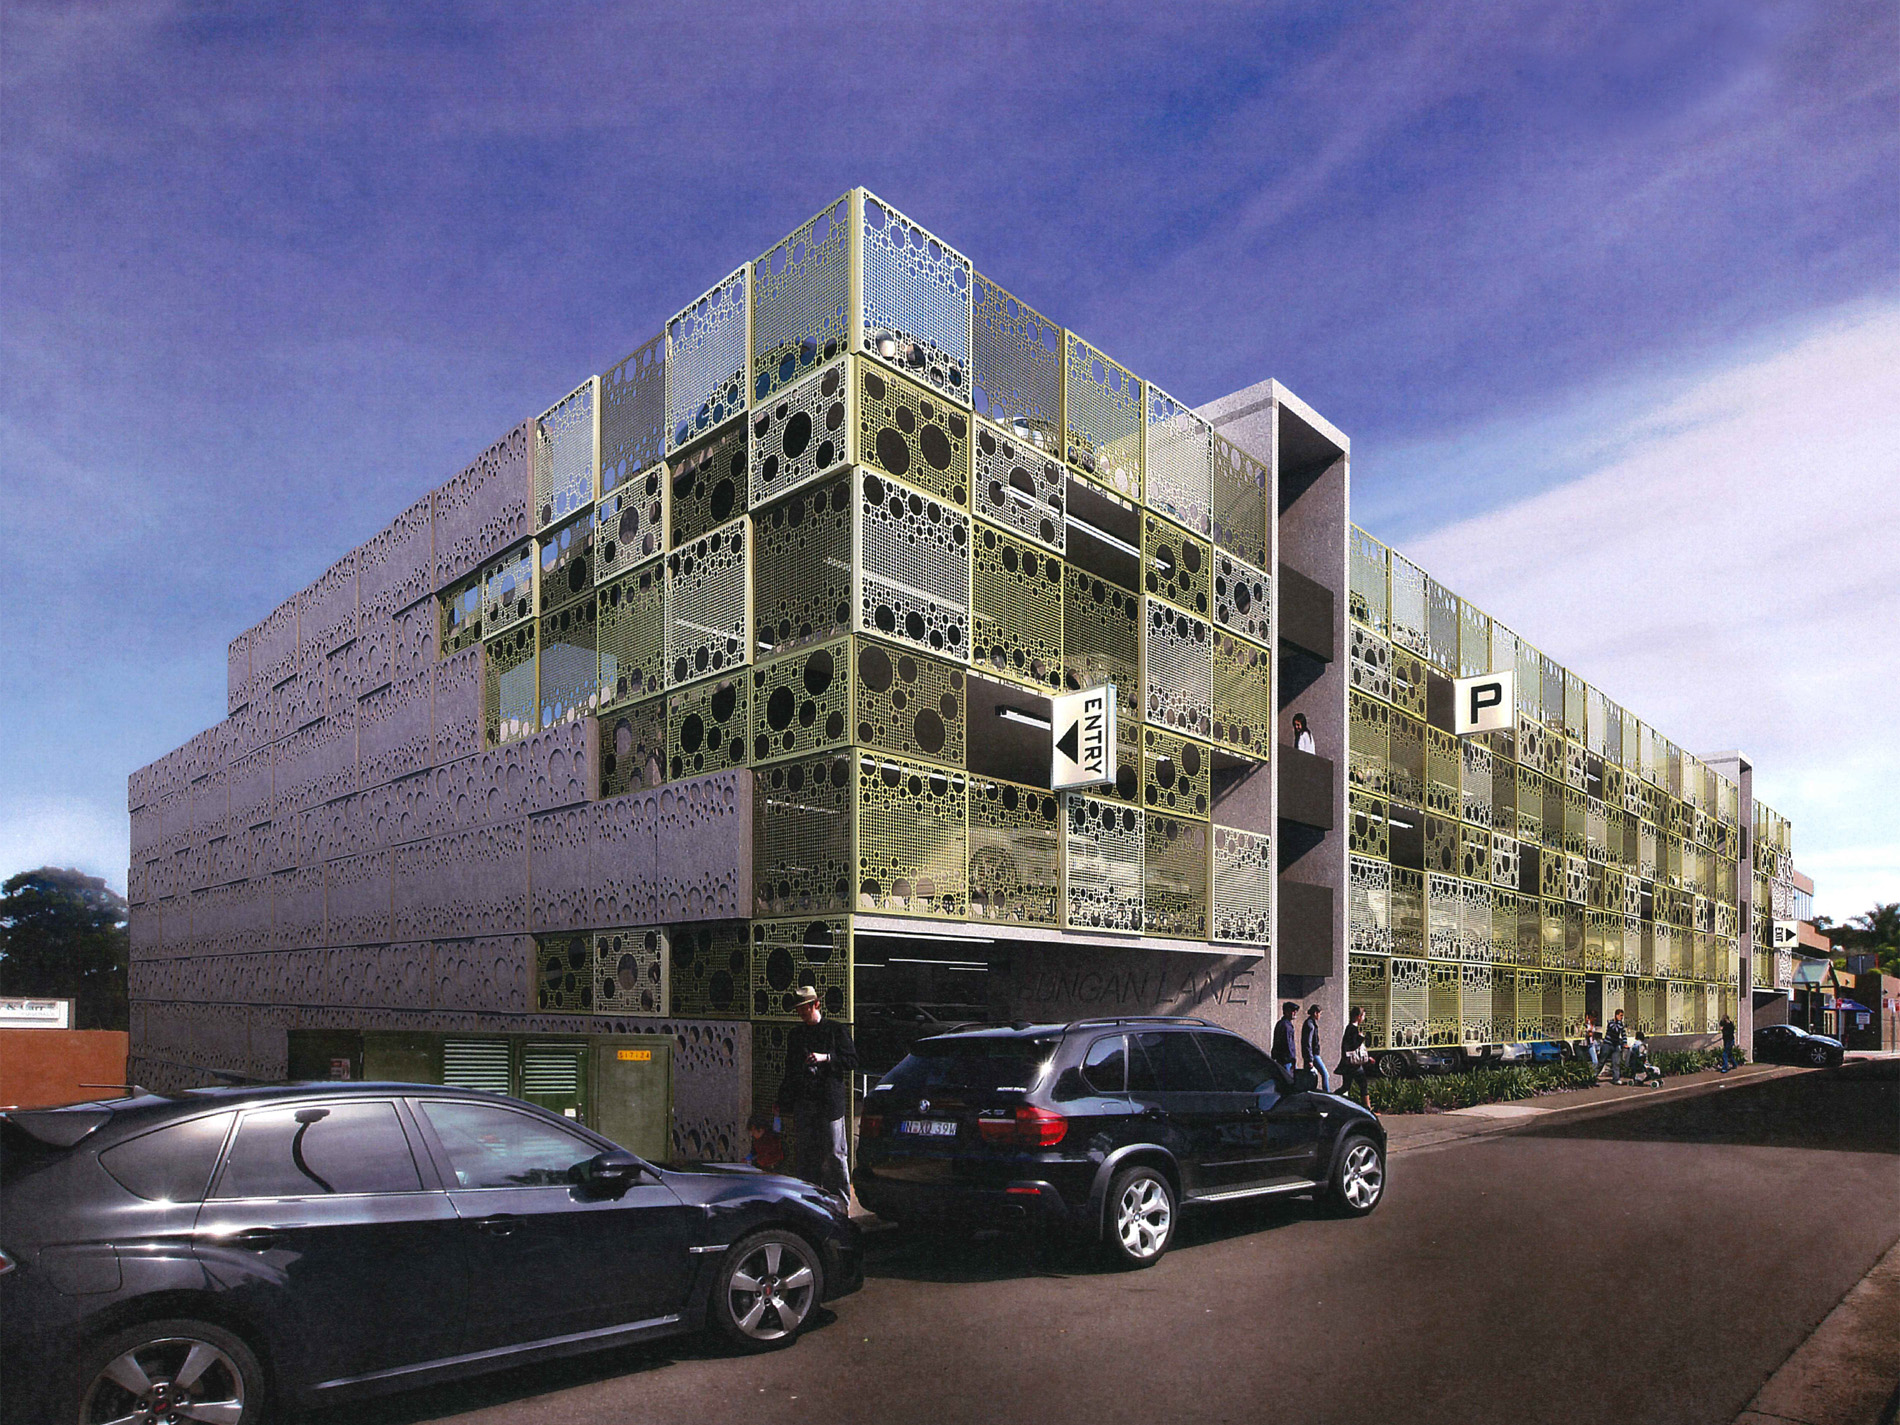 Bungan Lane Multi-Storey Car Park